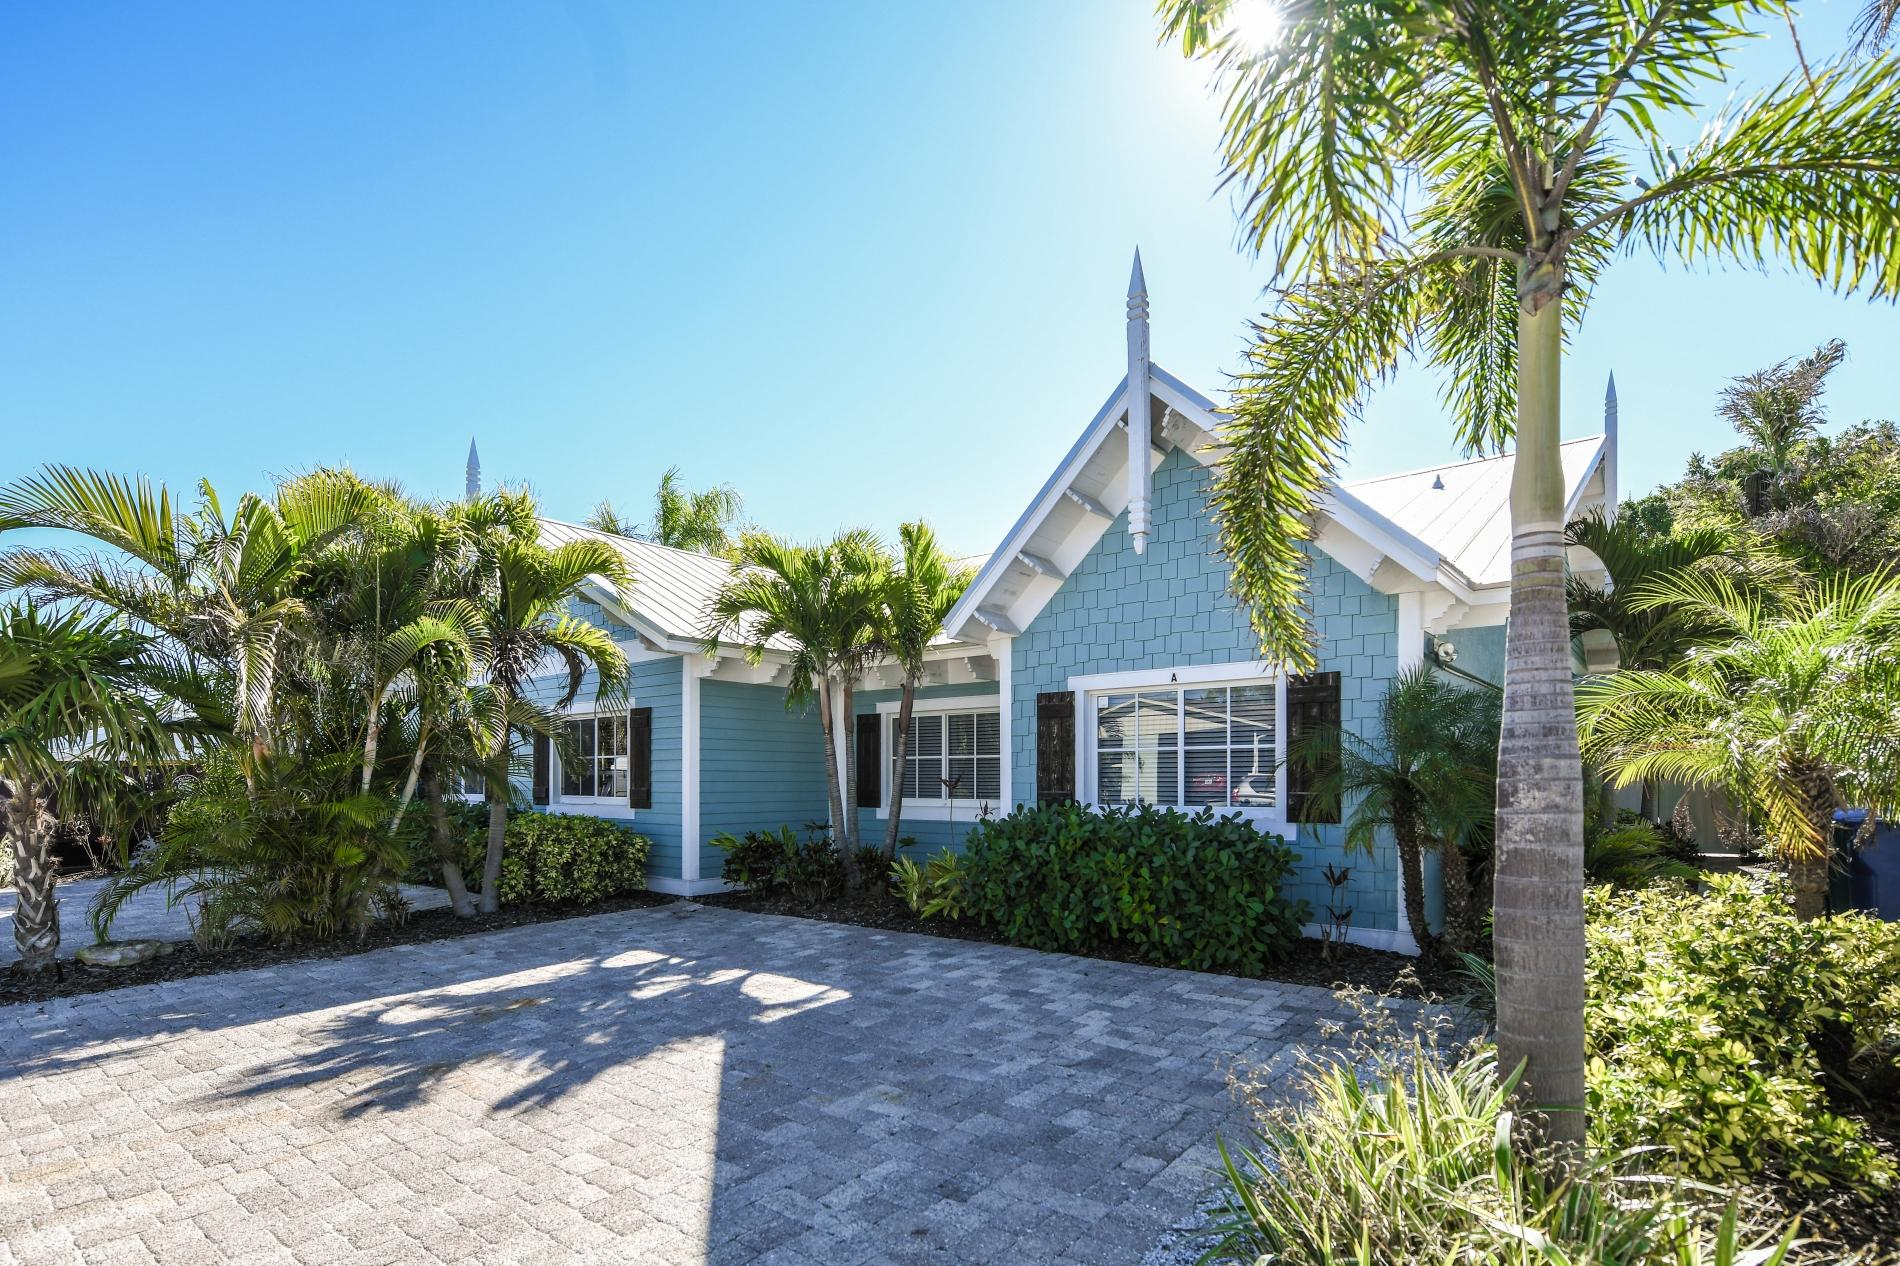 Mermaids Watch - Vacation Rental in Holmes Beach,Florida | AMI Locals